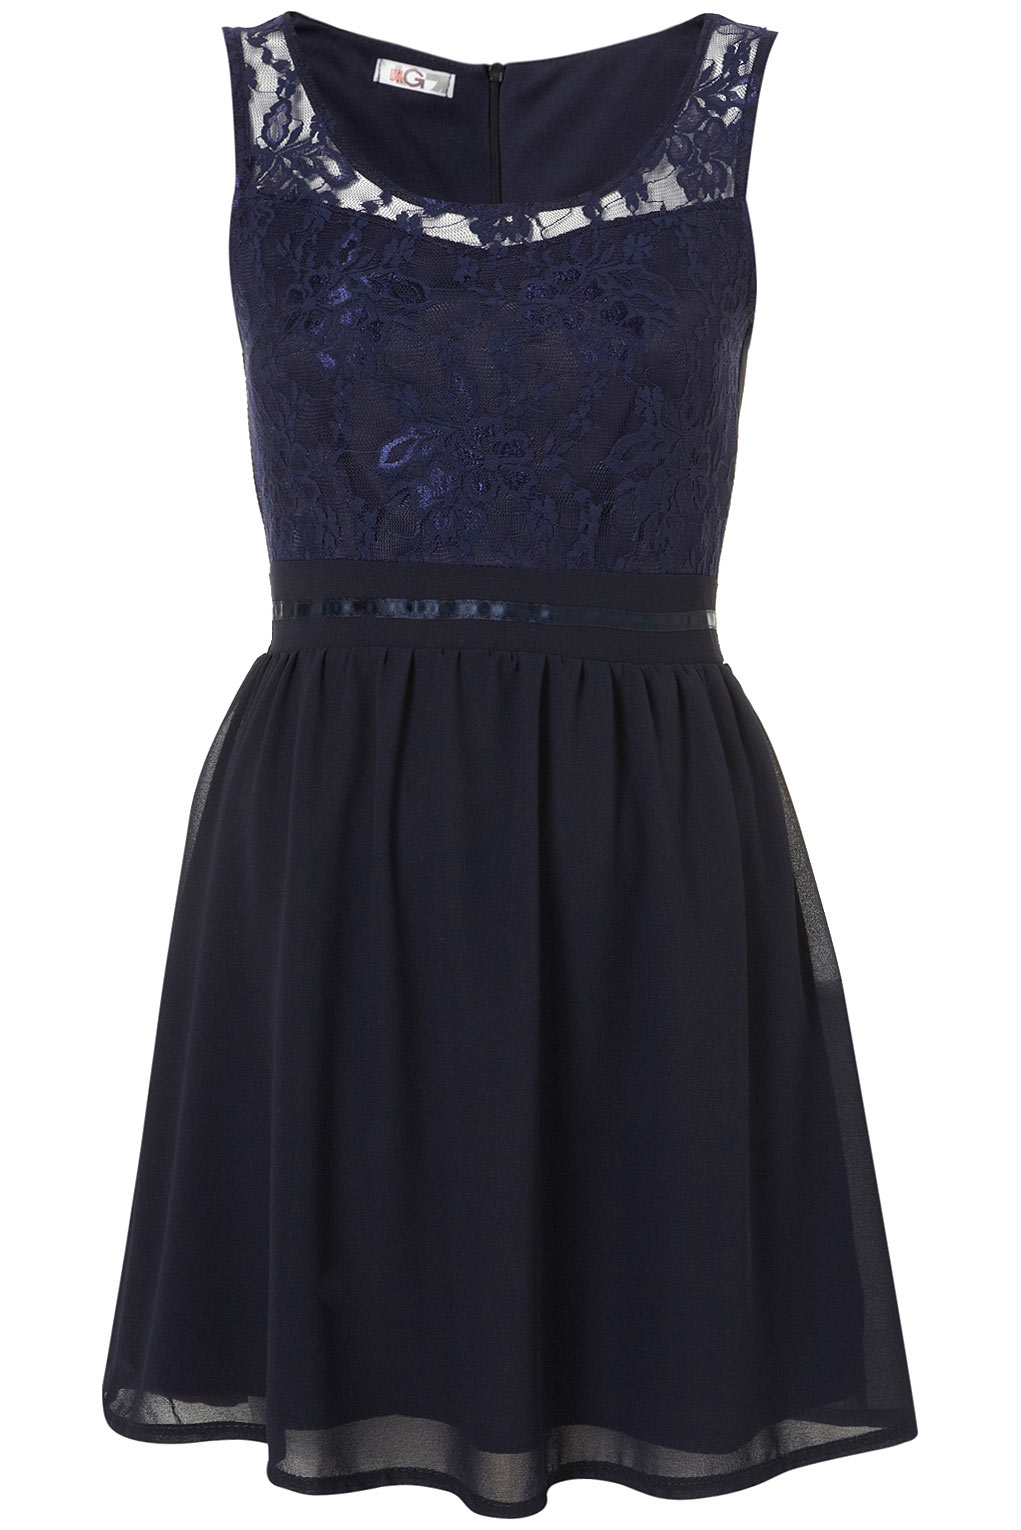 Topshop embroidery lace dress by wal g in blue navy